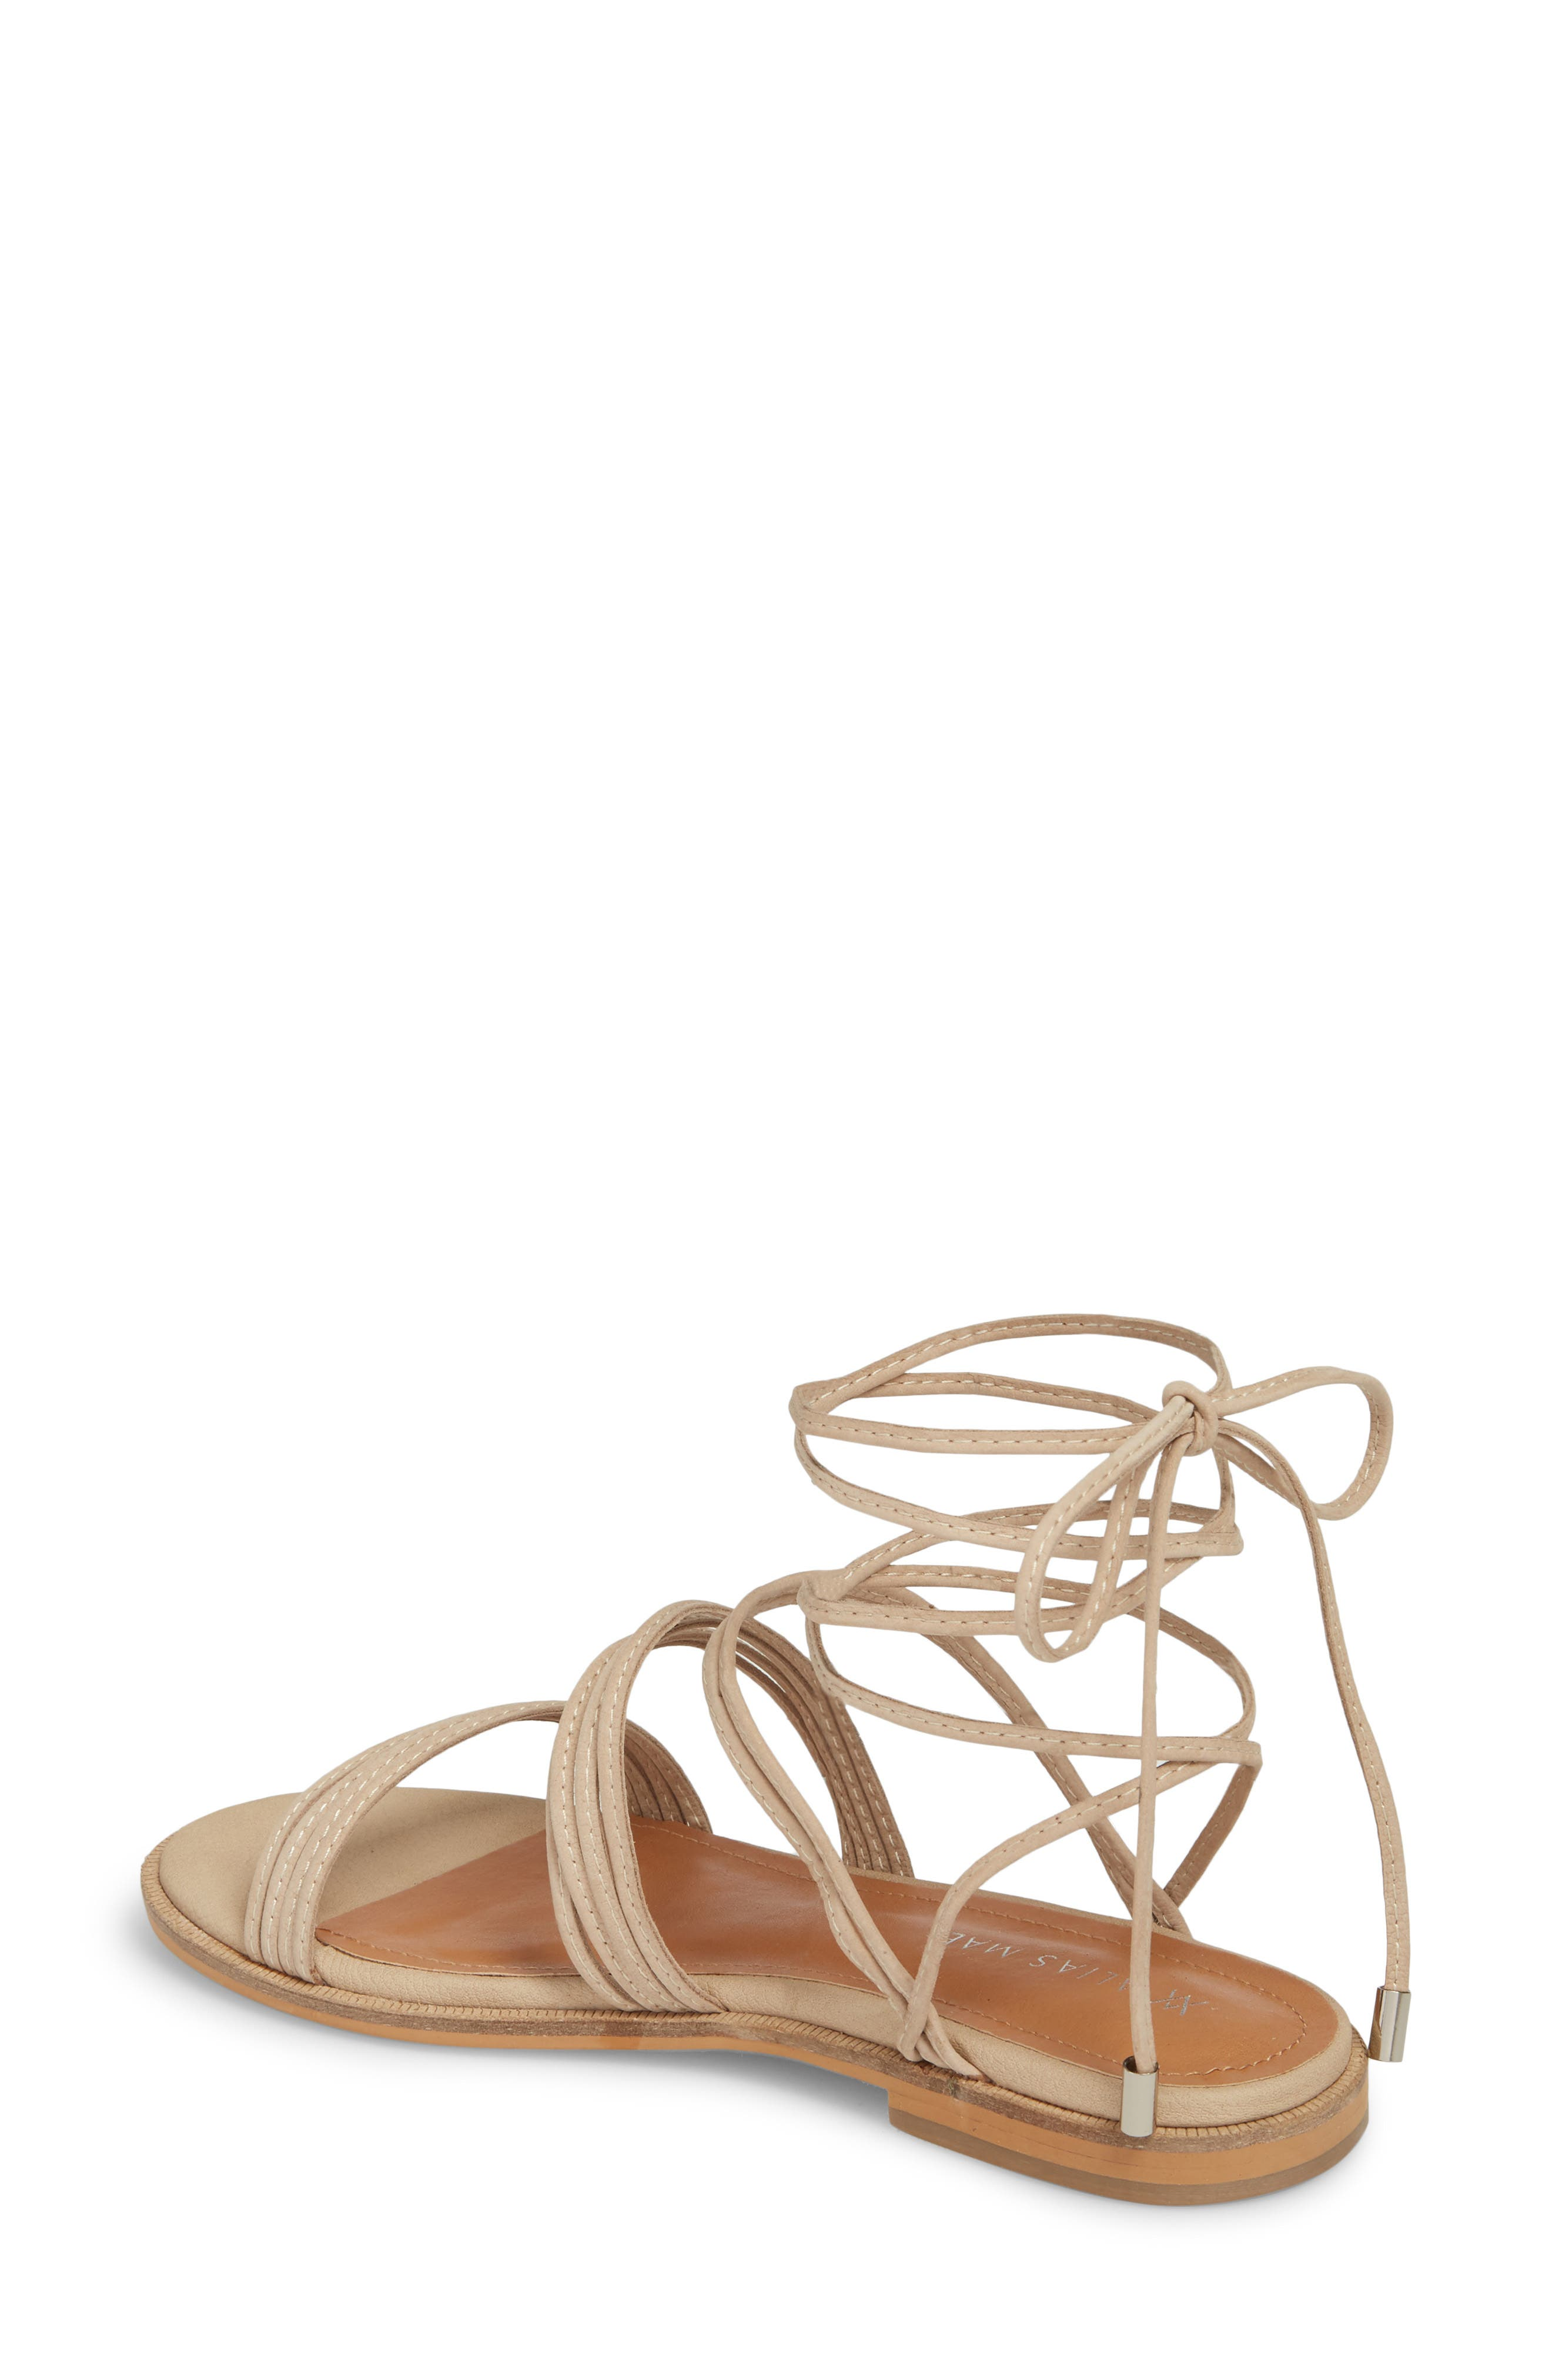 Theory Strappy Flat Sandal,                             Alternate thumbnail 5, color,